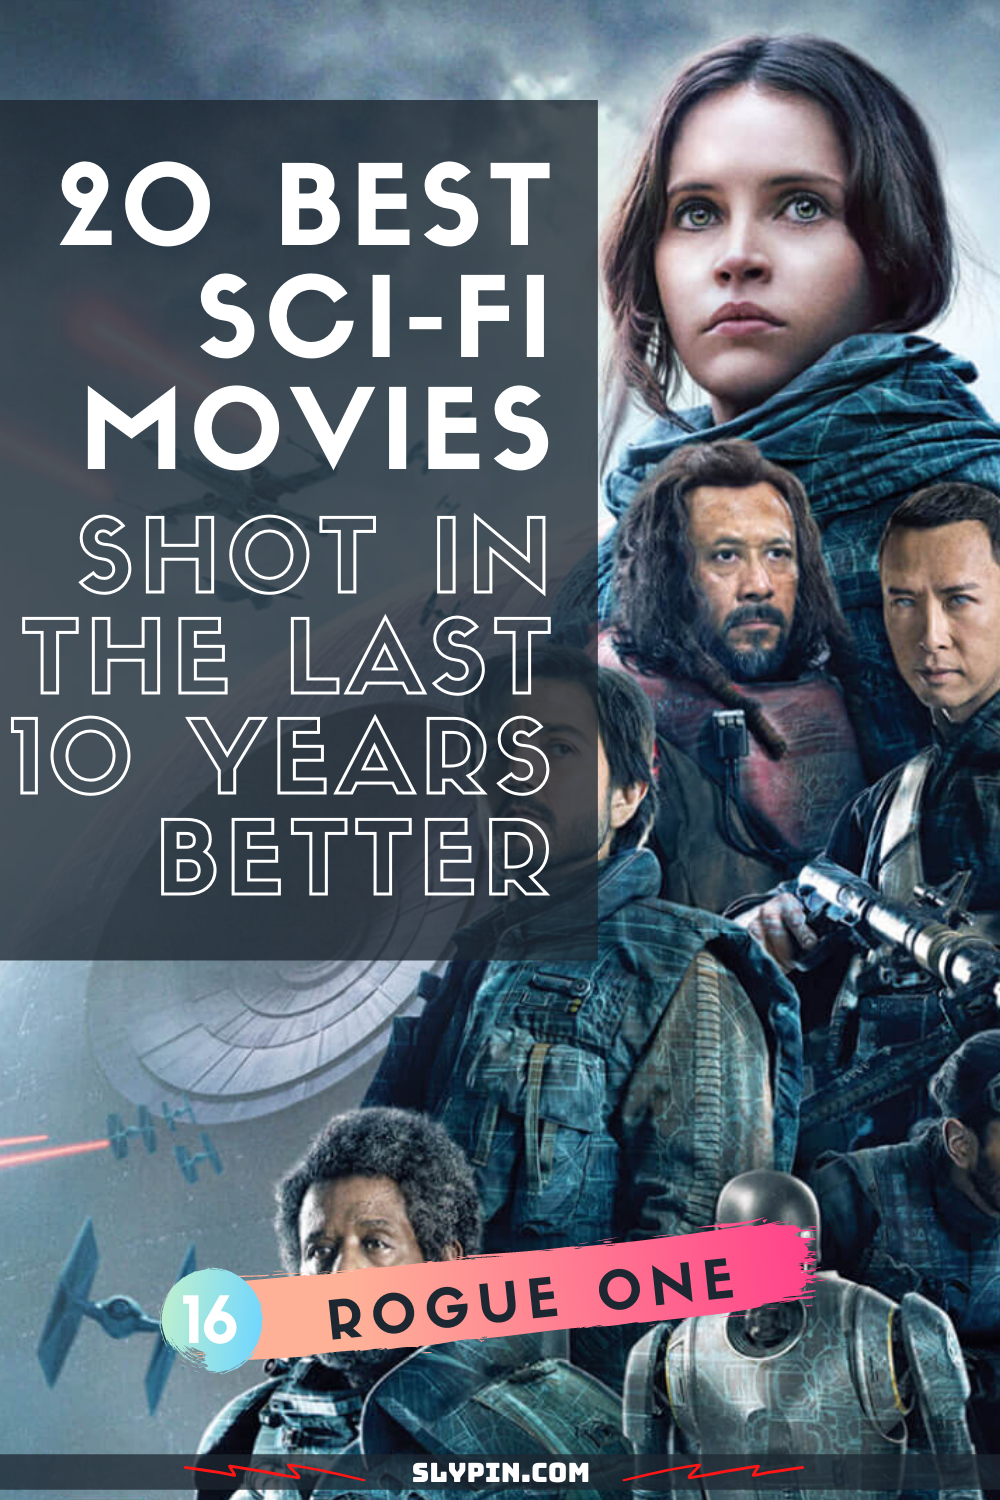 20 Best Sci-fi Movies Shot in the Last 10 Years in 2020 ...